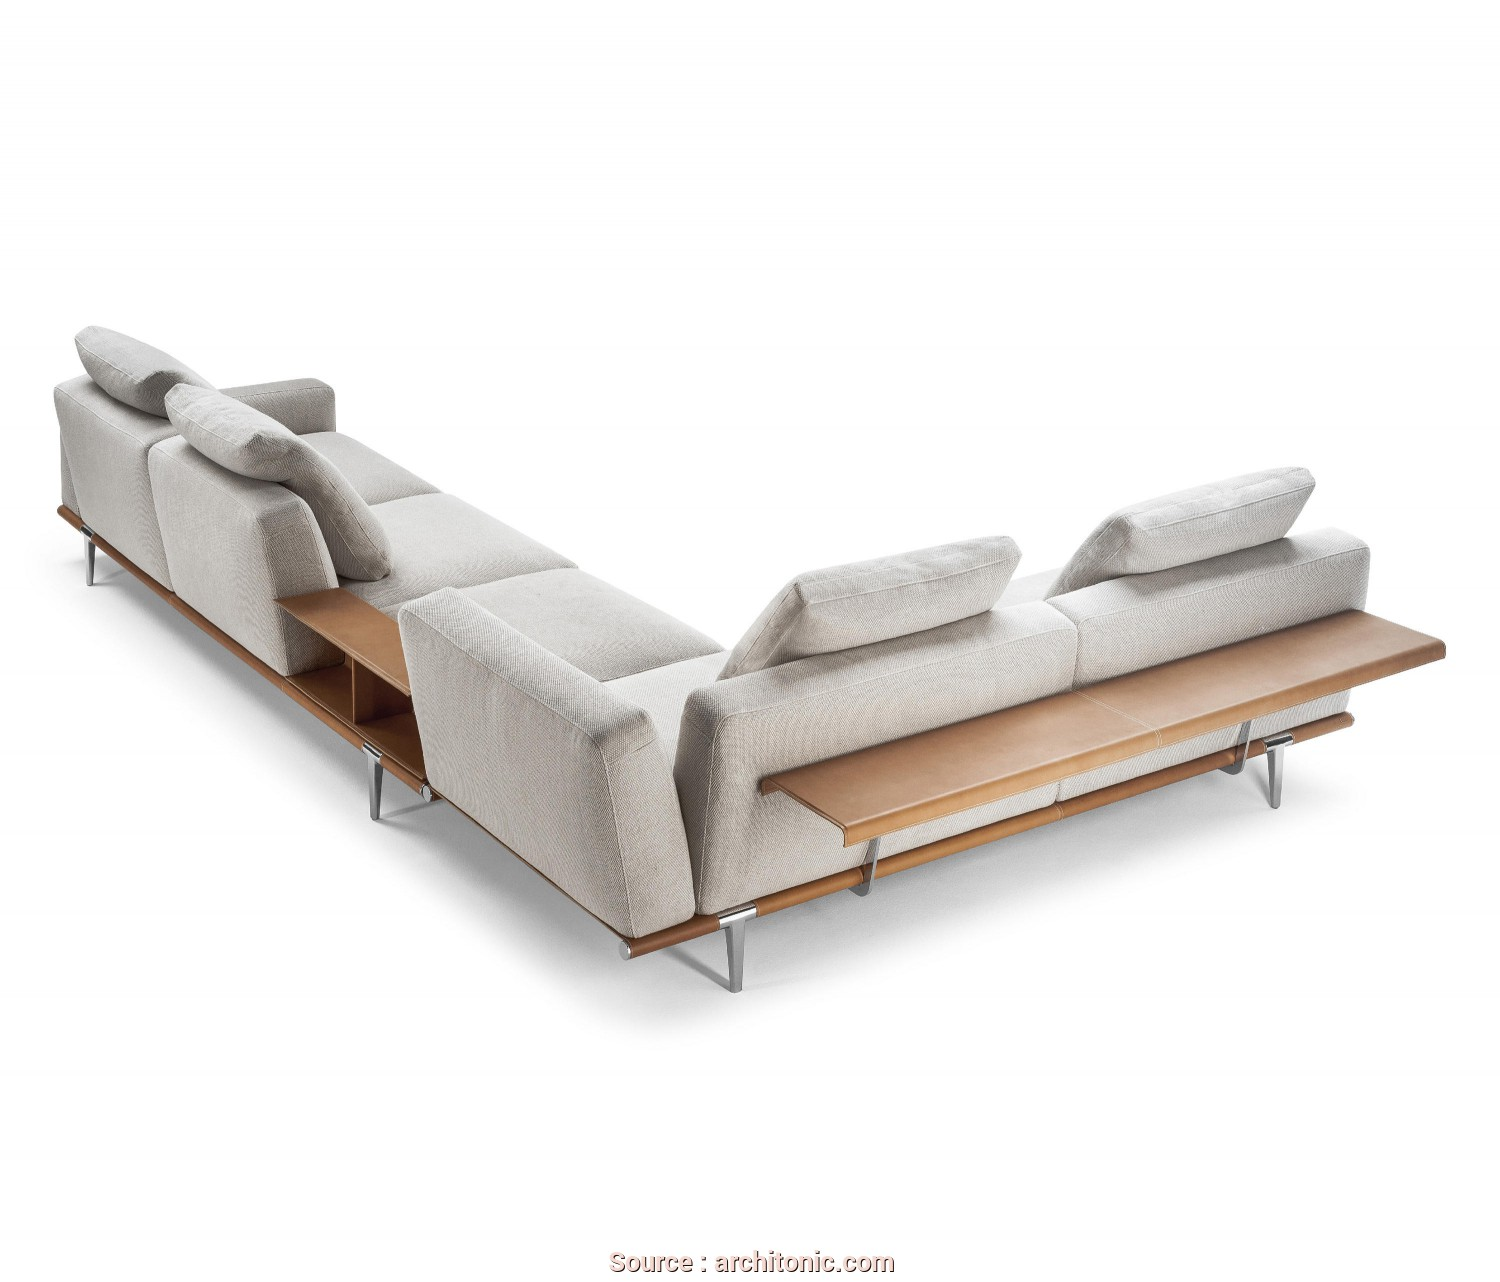 Divano Frau, It Be, Deale LET IT BE, Sofas From Poltrona Frau, Architonic